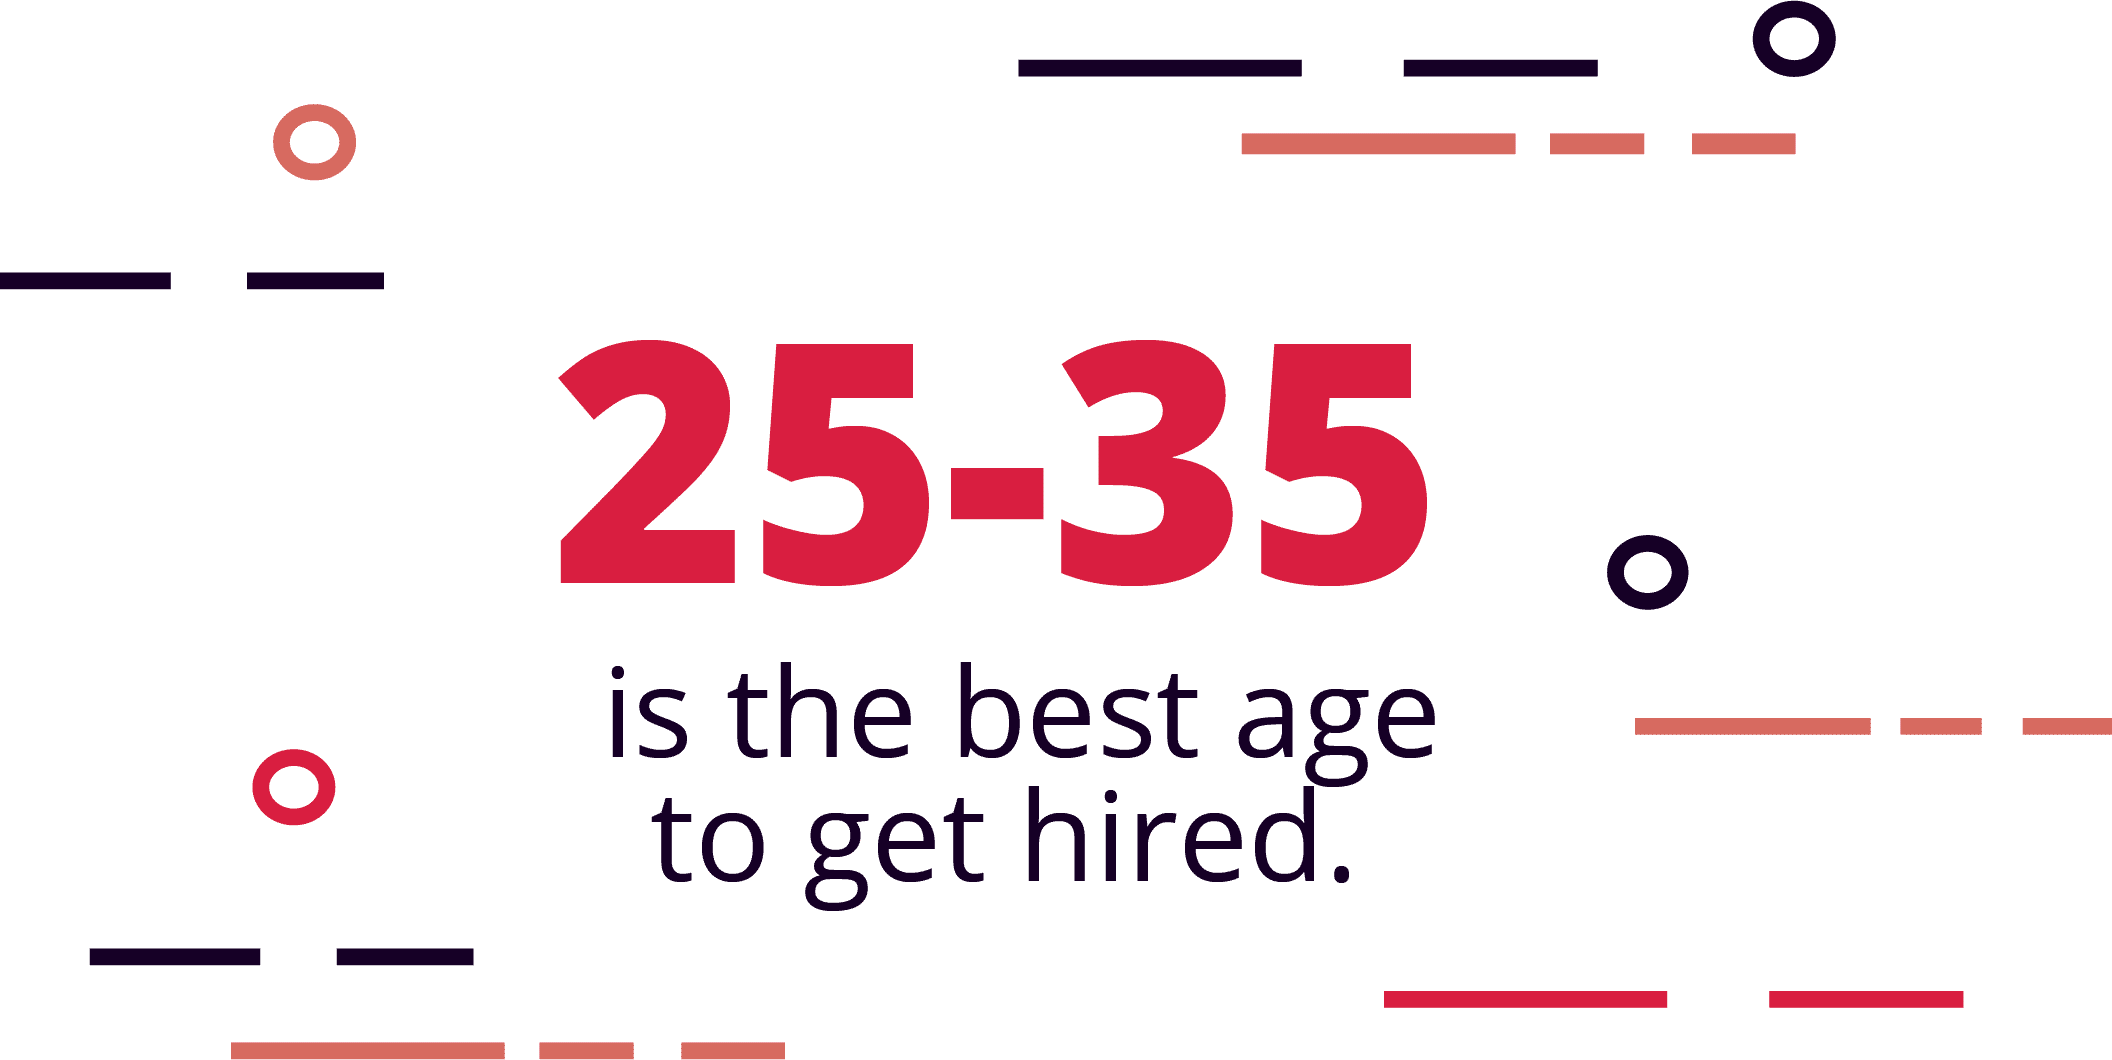 If you are over 35, leaving your age off your resume can help your chances